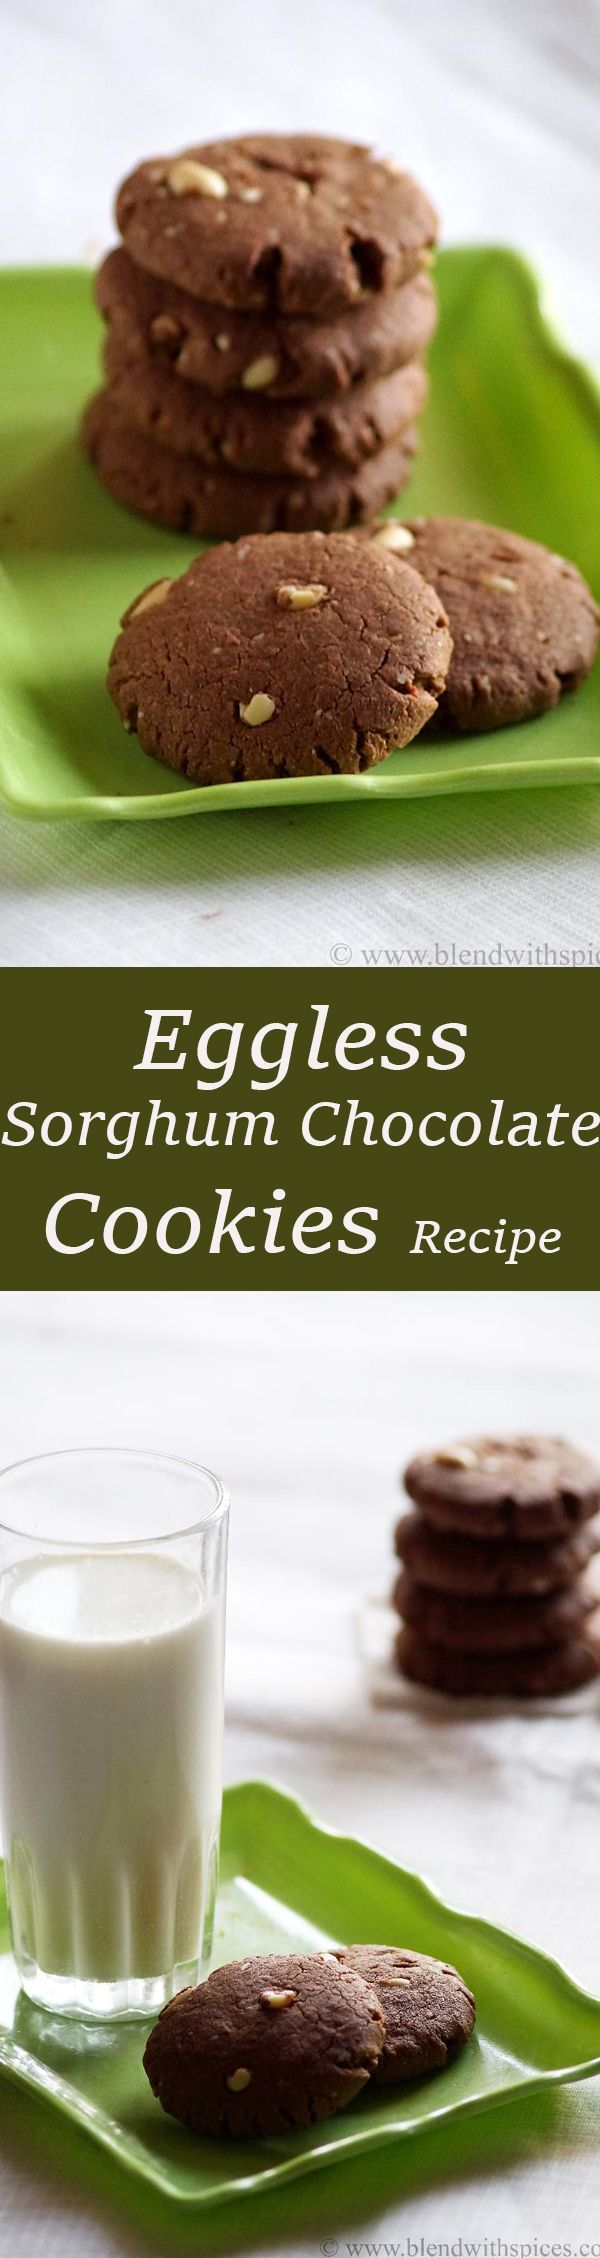 Eggless Sorghum (Jowar) Chocolate Peanut Cookies Recipe from blendwithspices.com…